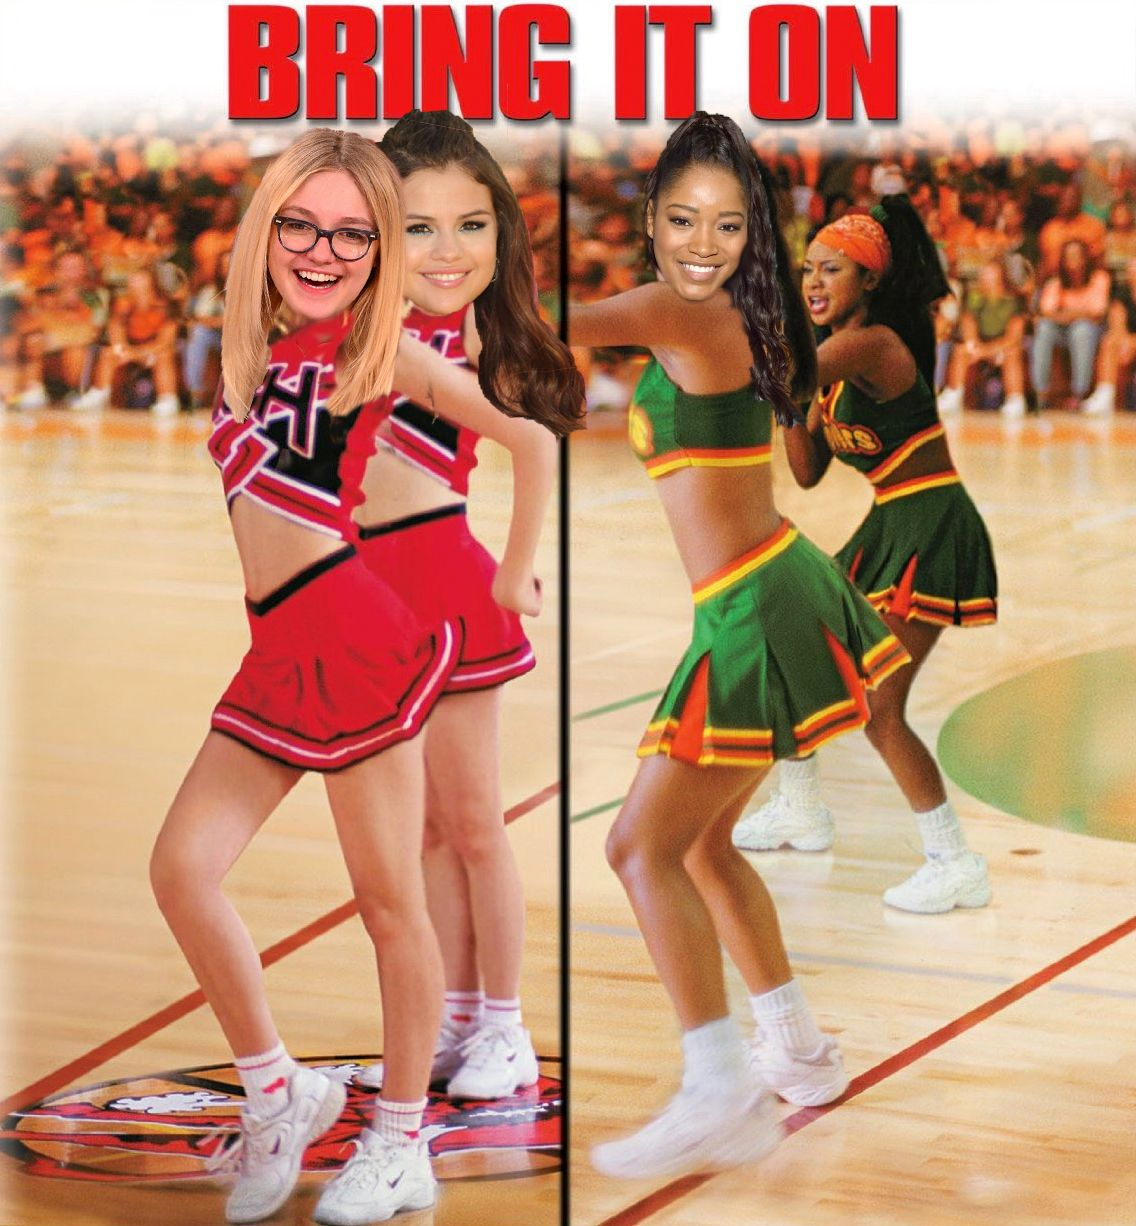 gabrielle union recasts bring it on for 2015 bring it on movie sequel